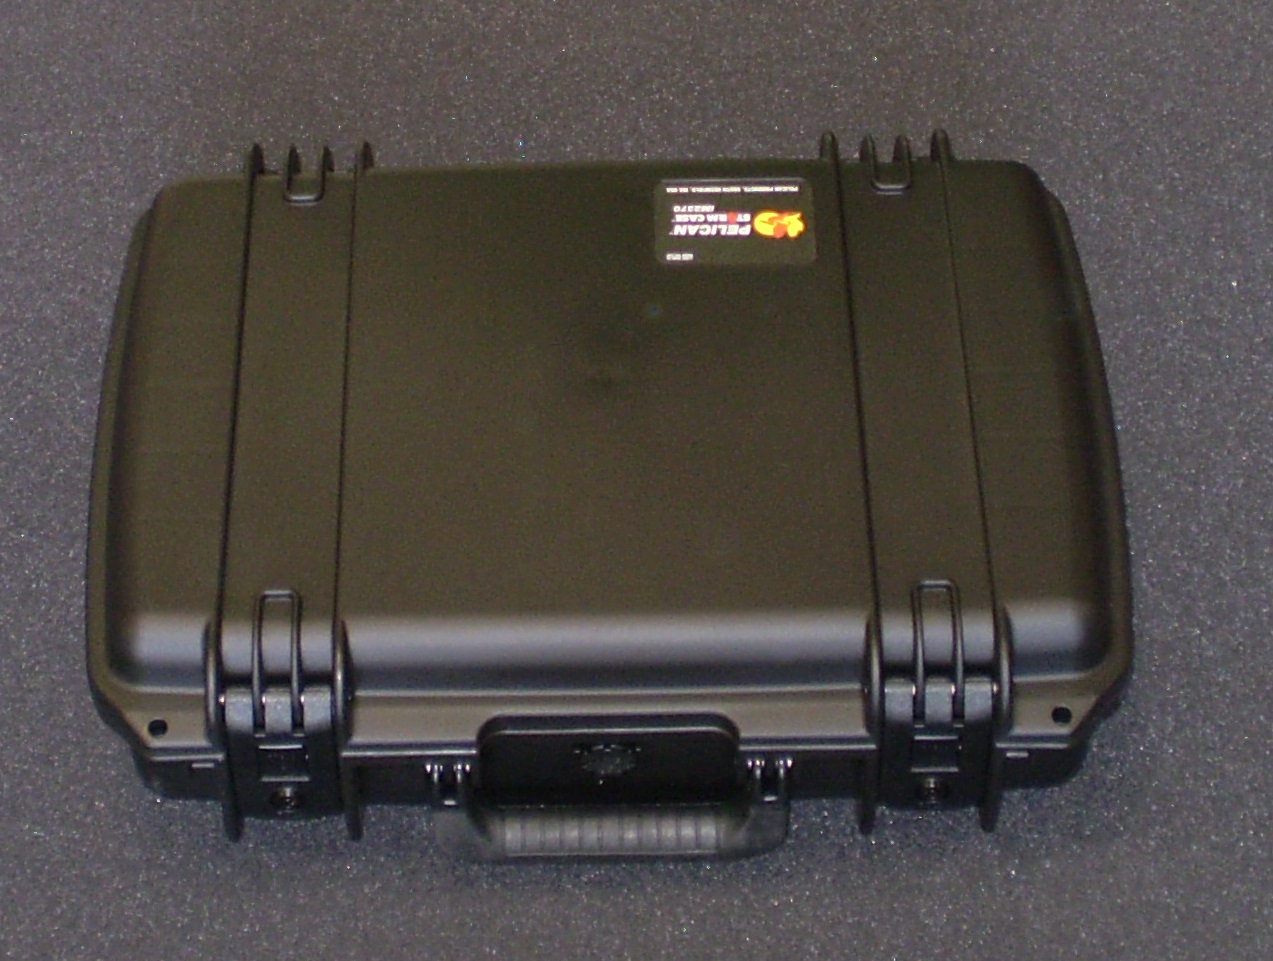 Print # 6074 - Pelican Storm iM2370 Retrofitted for 3-Pack Tascam Battery Packs with Tascam Charger By Nelson Case Corp